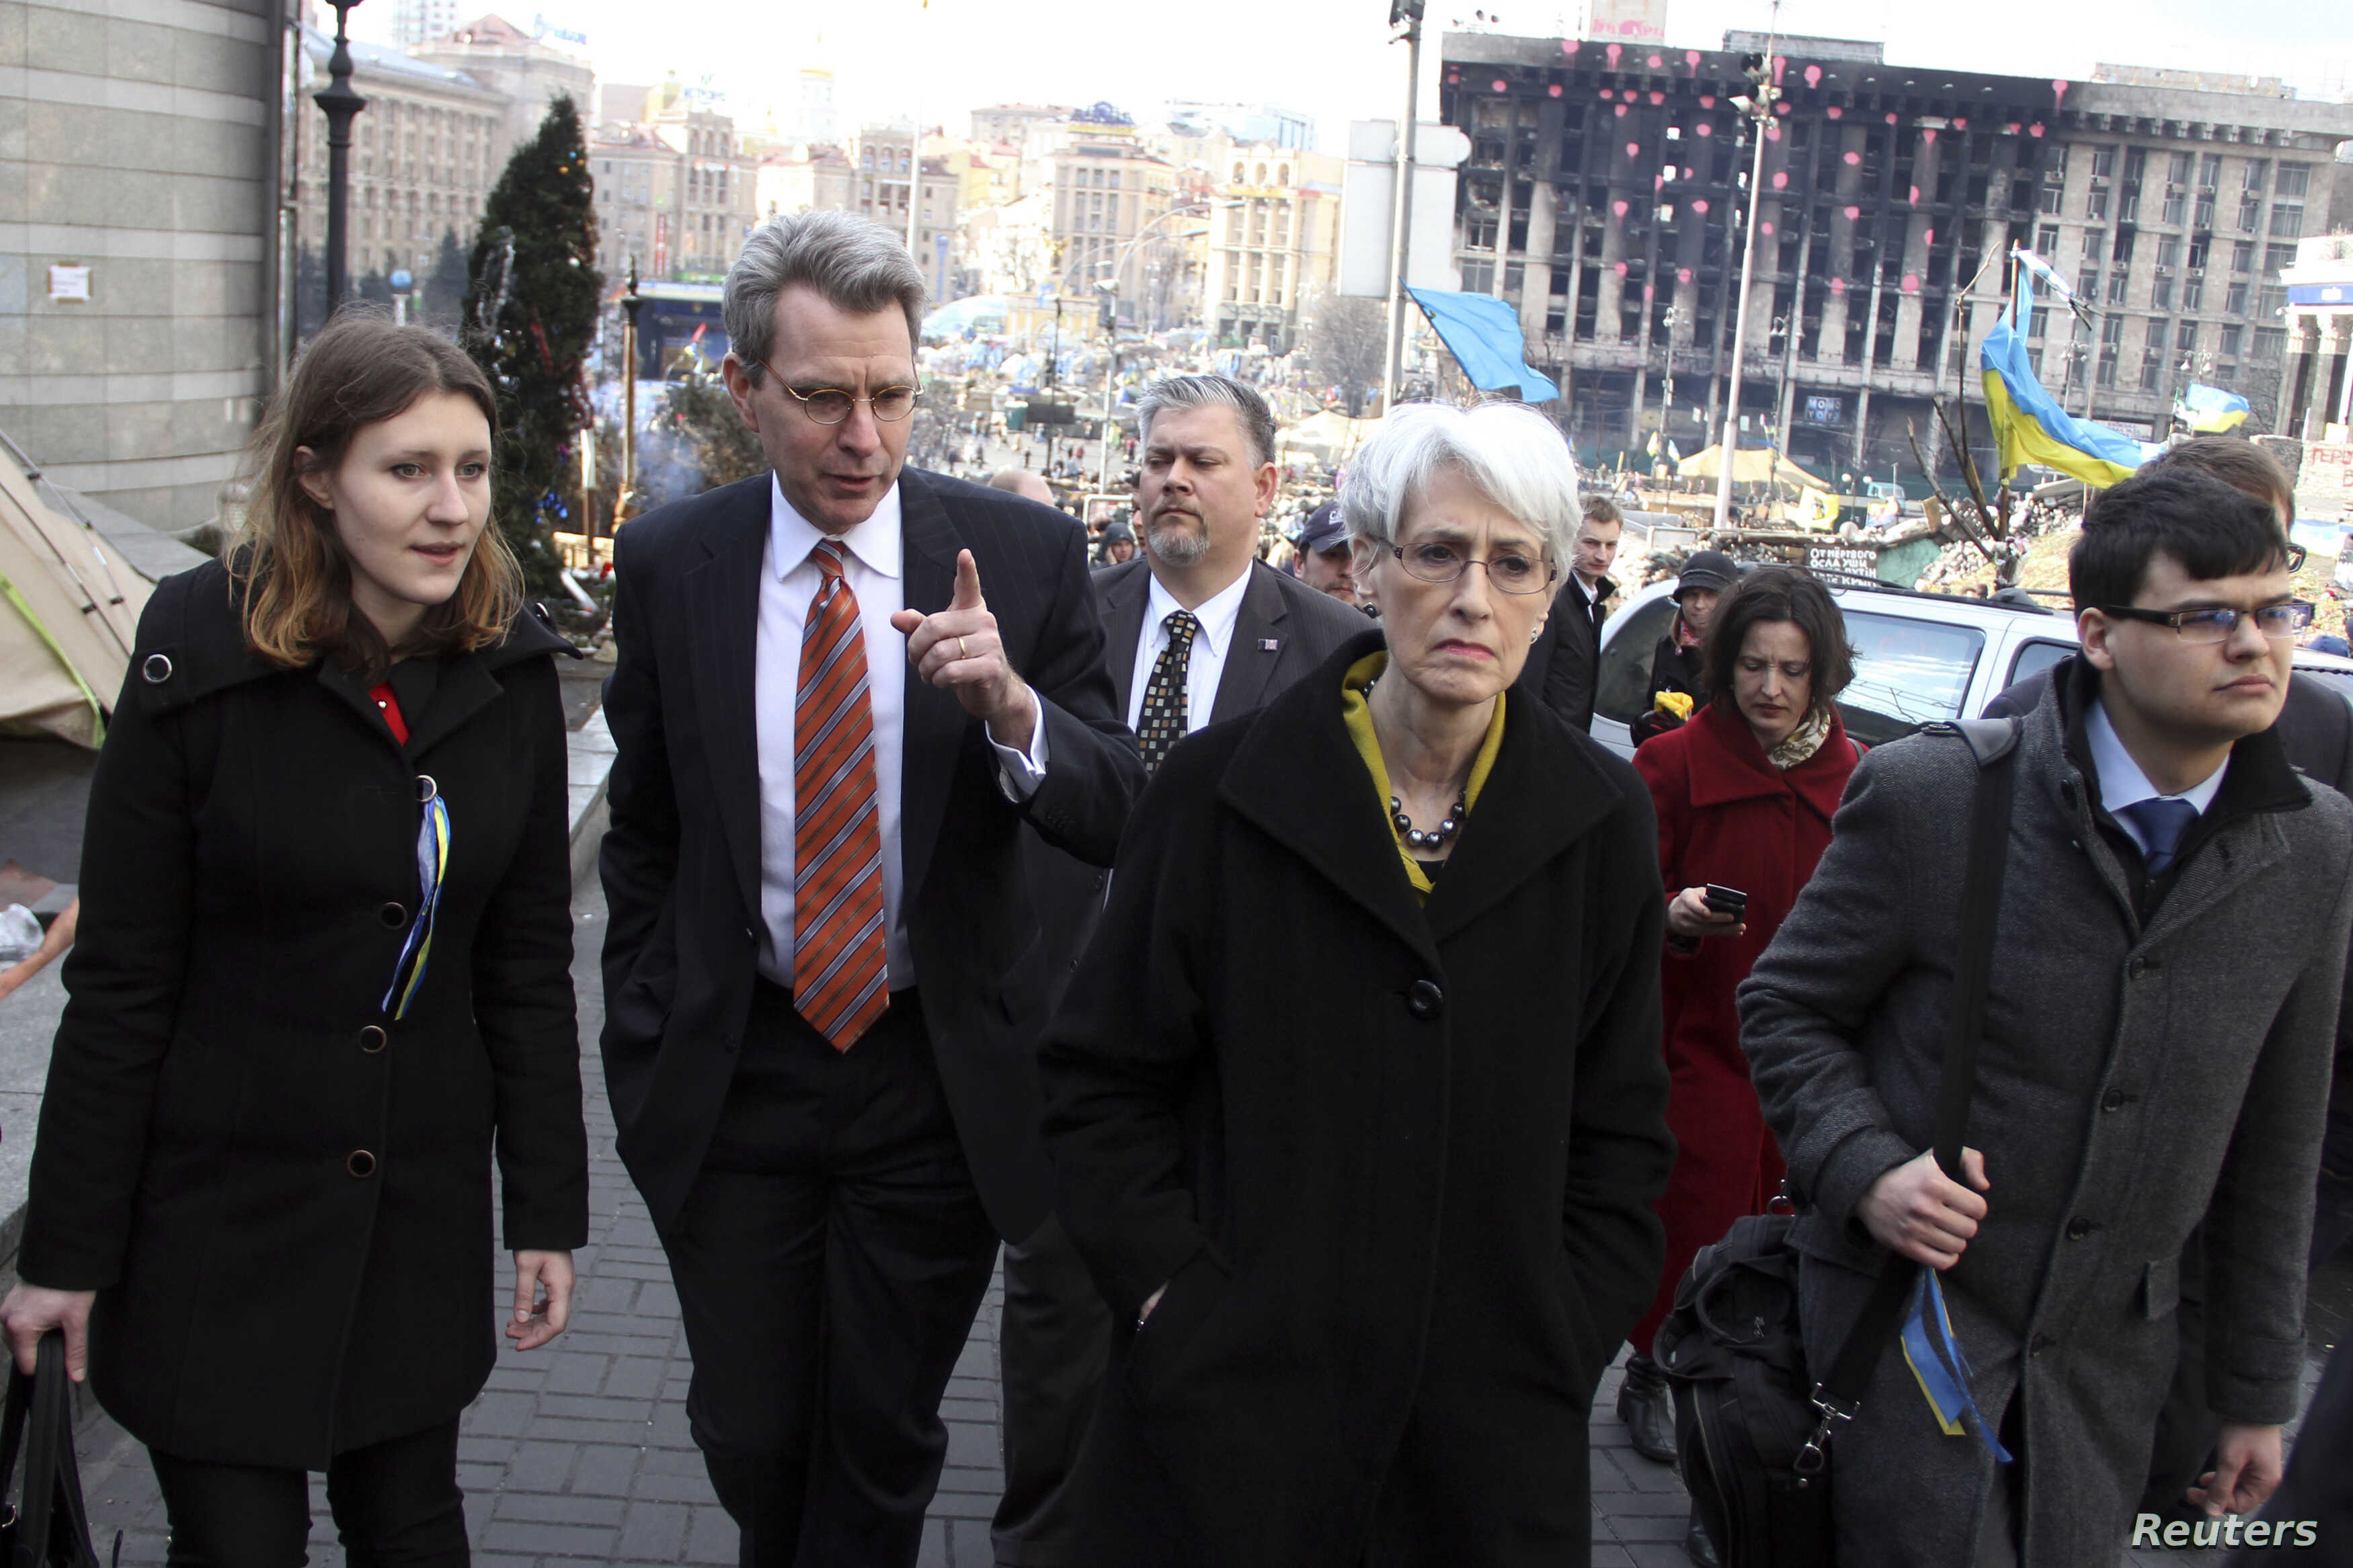 U.S. Under Secretary of State for Political Affairs Wendy Sherman (C) visits Independence Square in Kyiv, March 20, 2014.